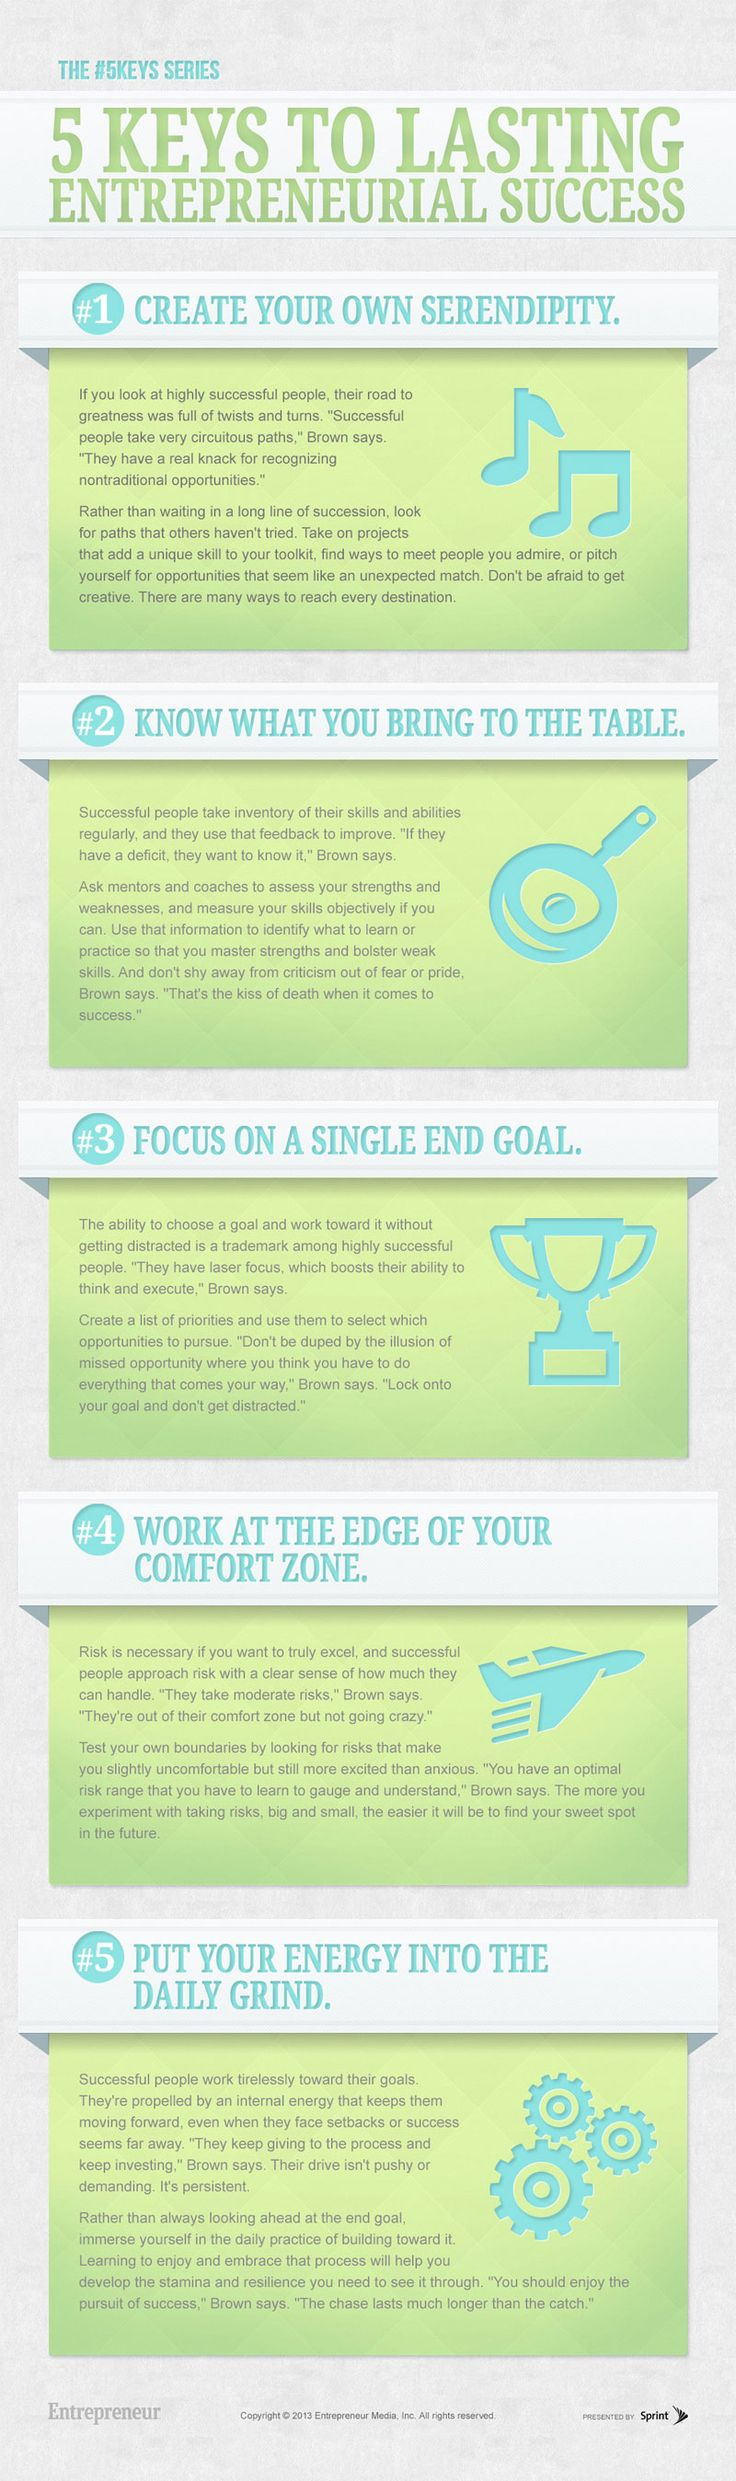 best ideas about strategic leadership leadership 5 keys to lasting entrepreneurial success infographic